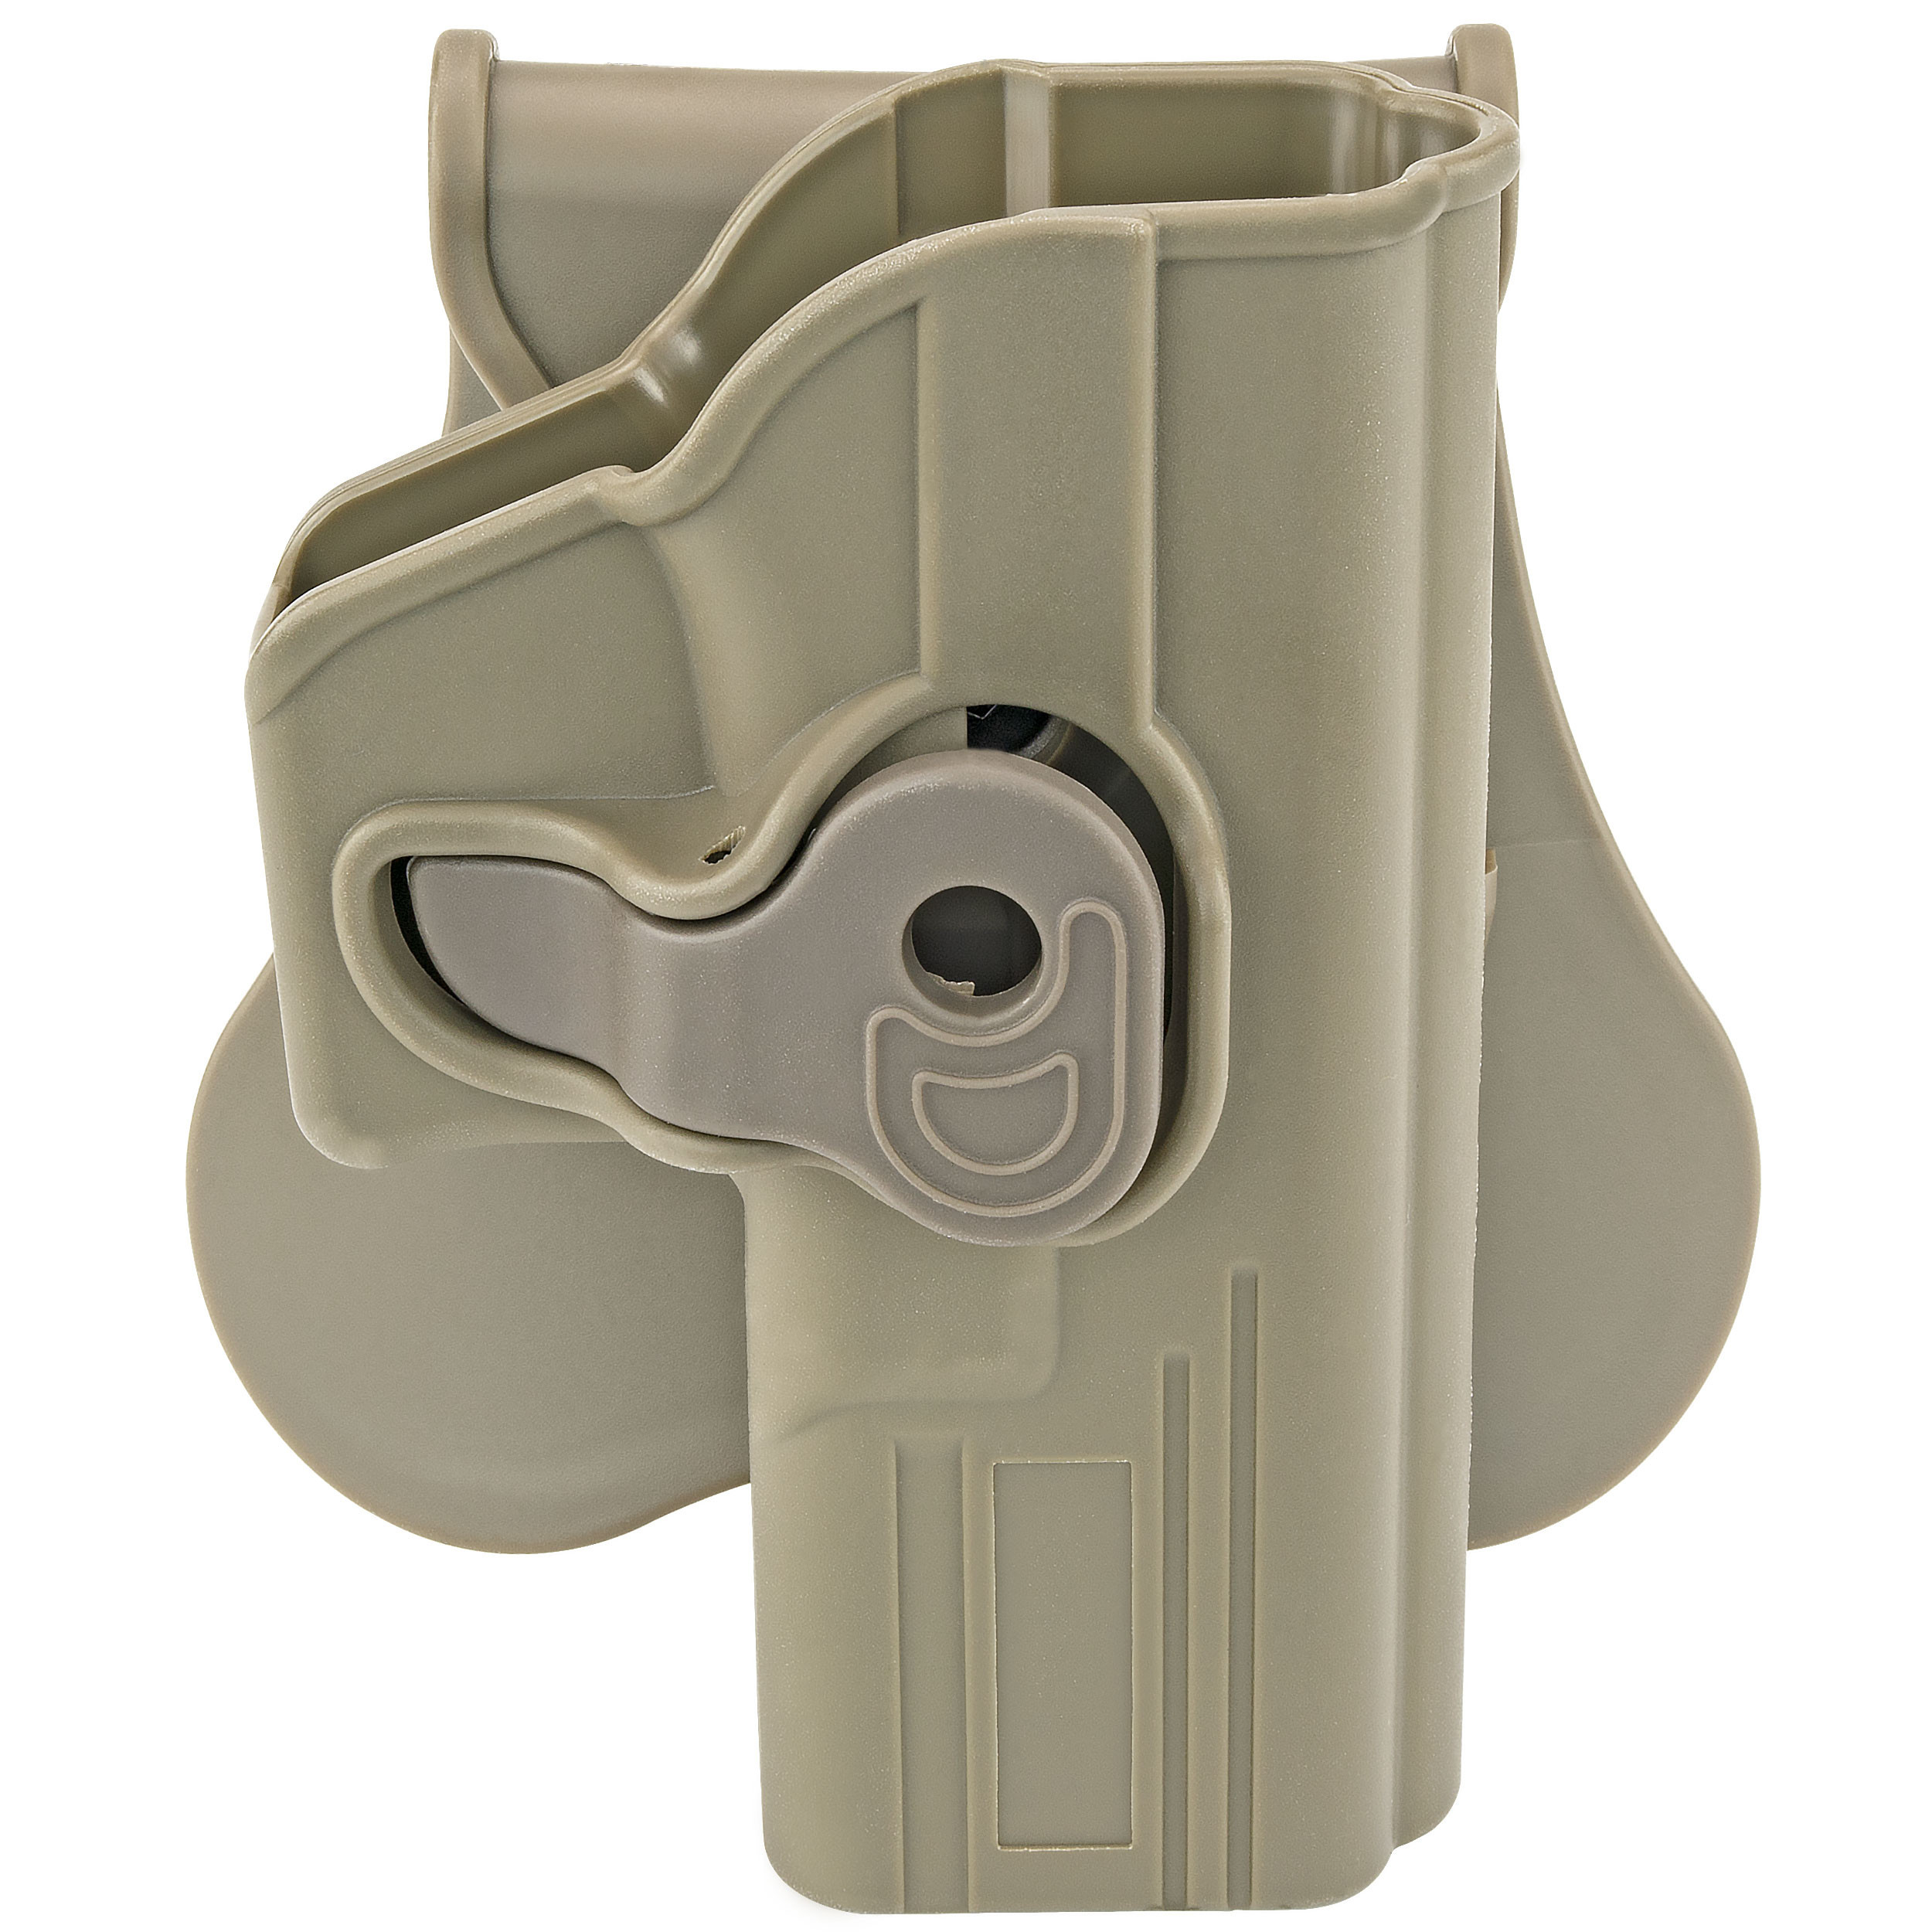 Fits Glock 19, 23, 32 (Gen 1,2,3,4); FDE Color Available